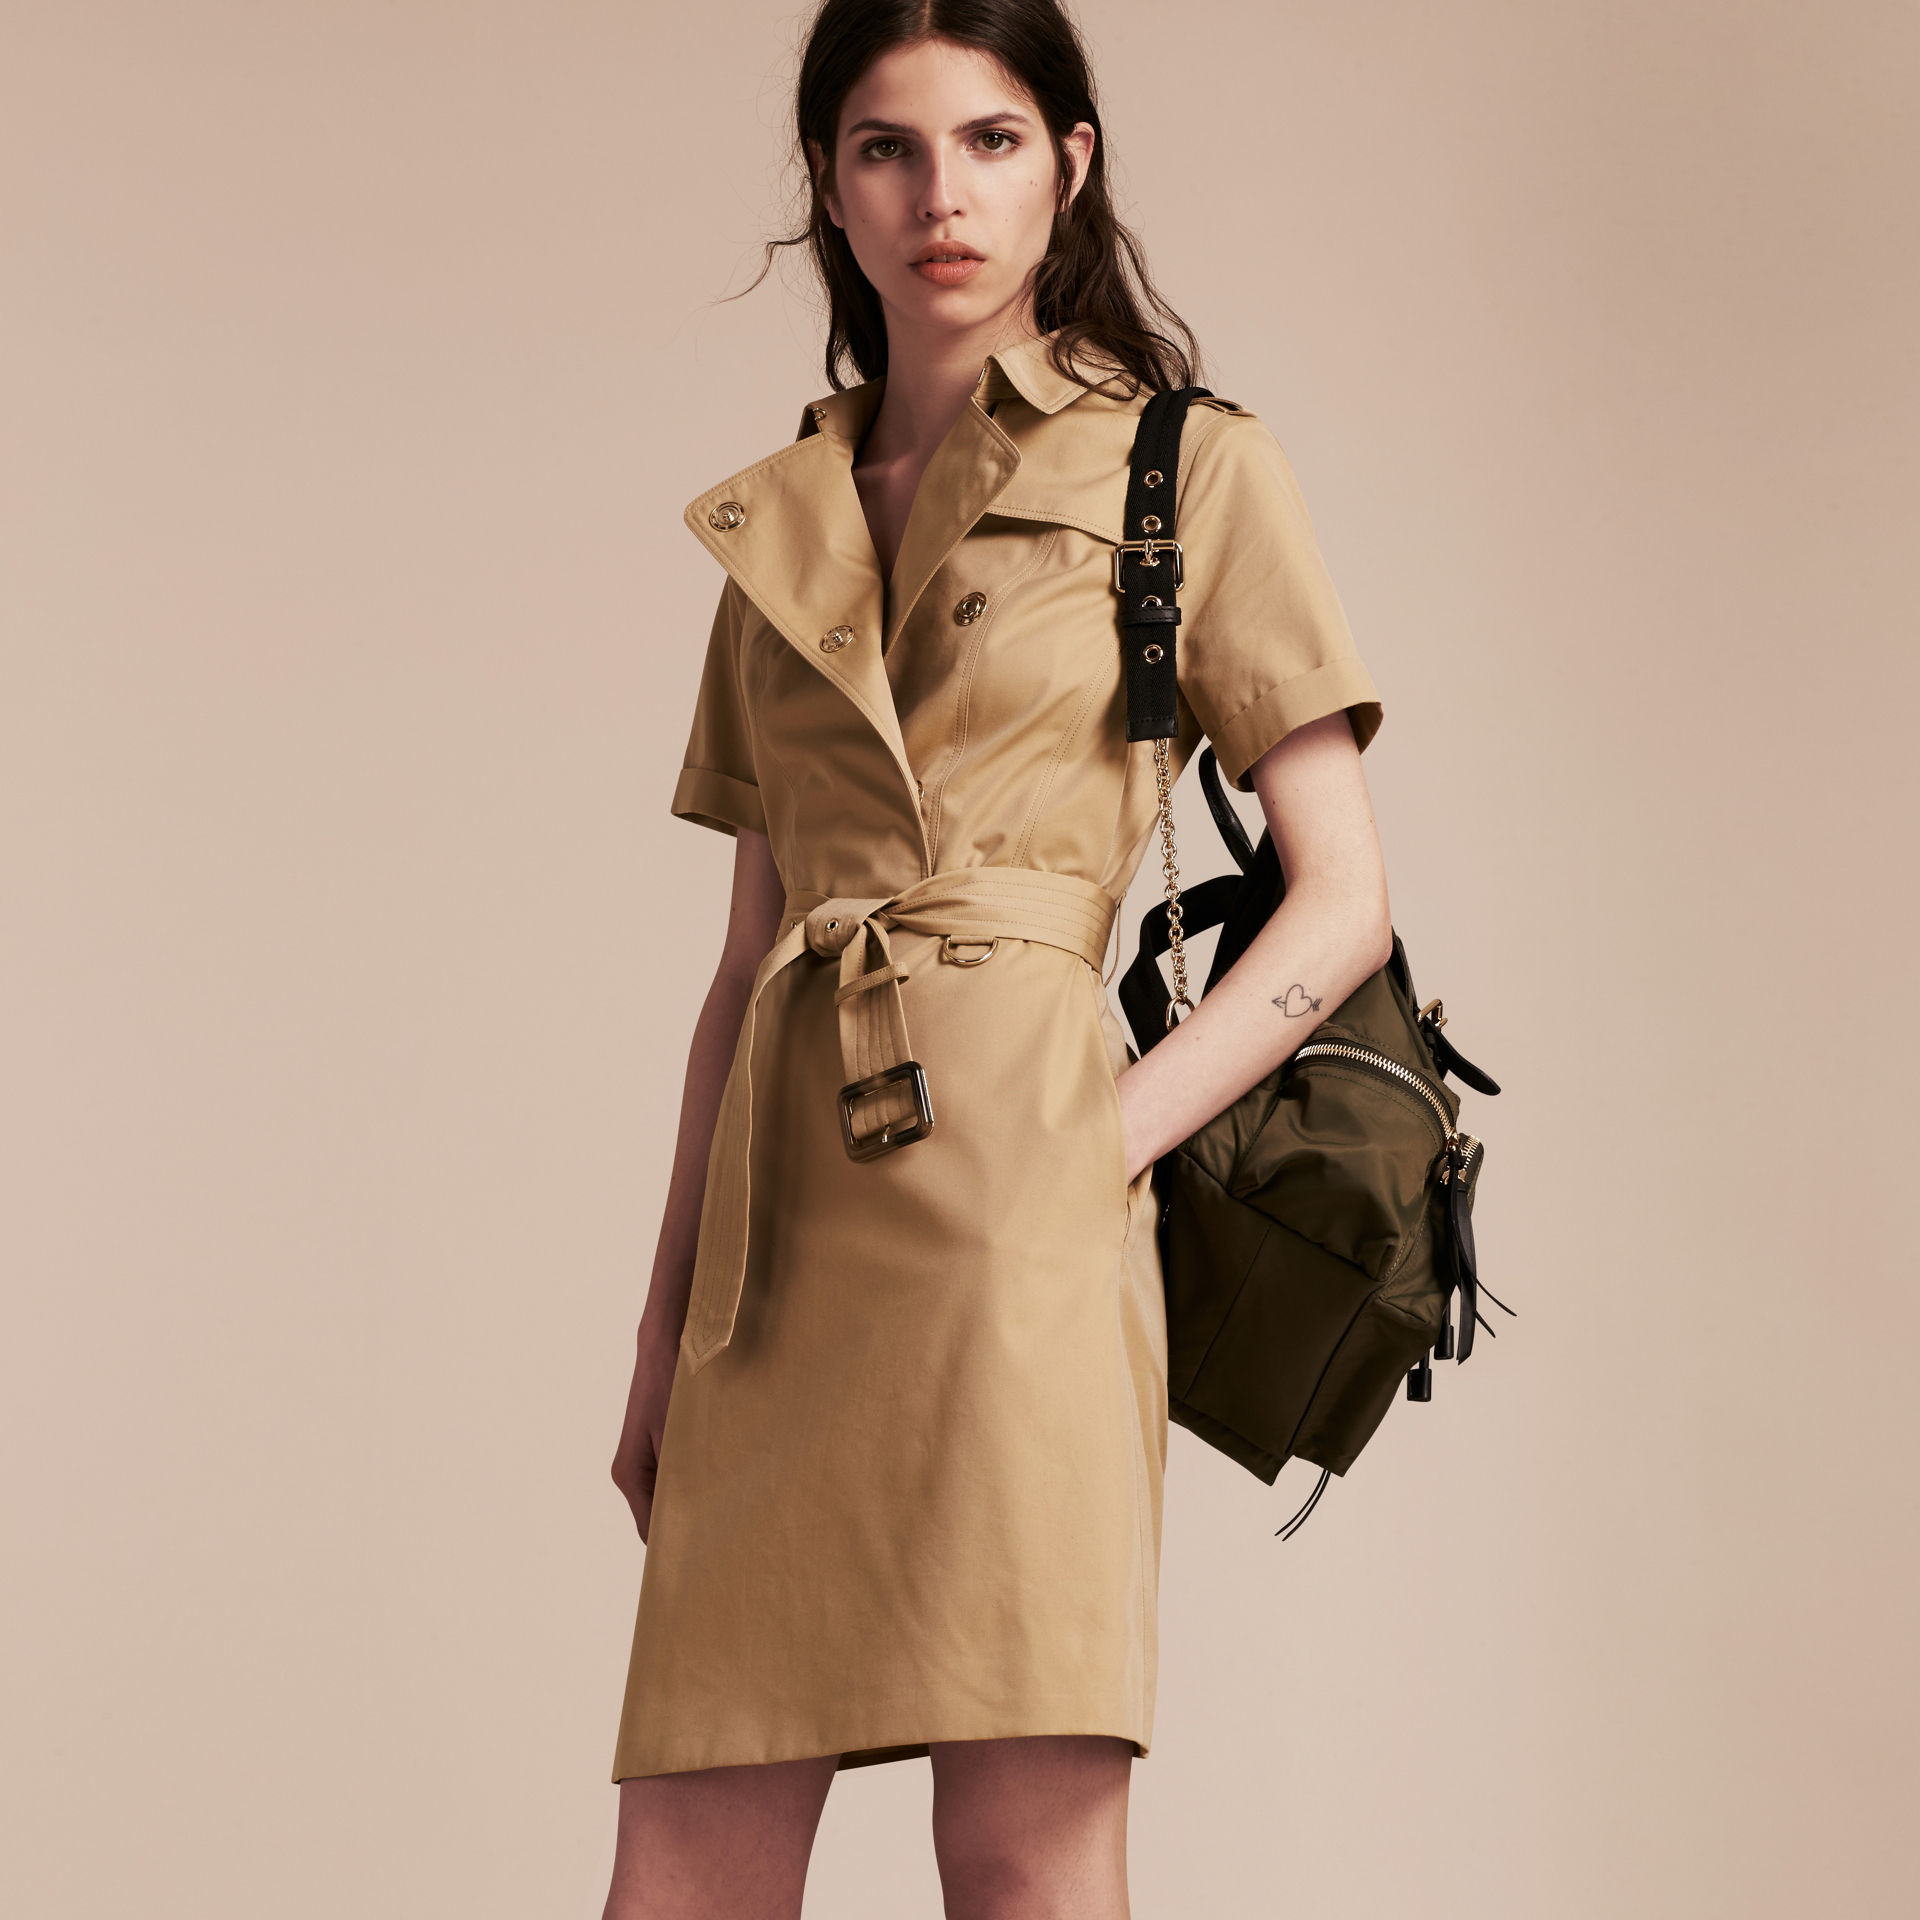 How to short wear sleeve trench coat photo